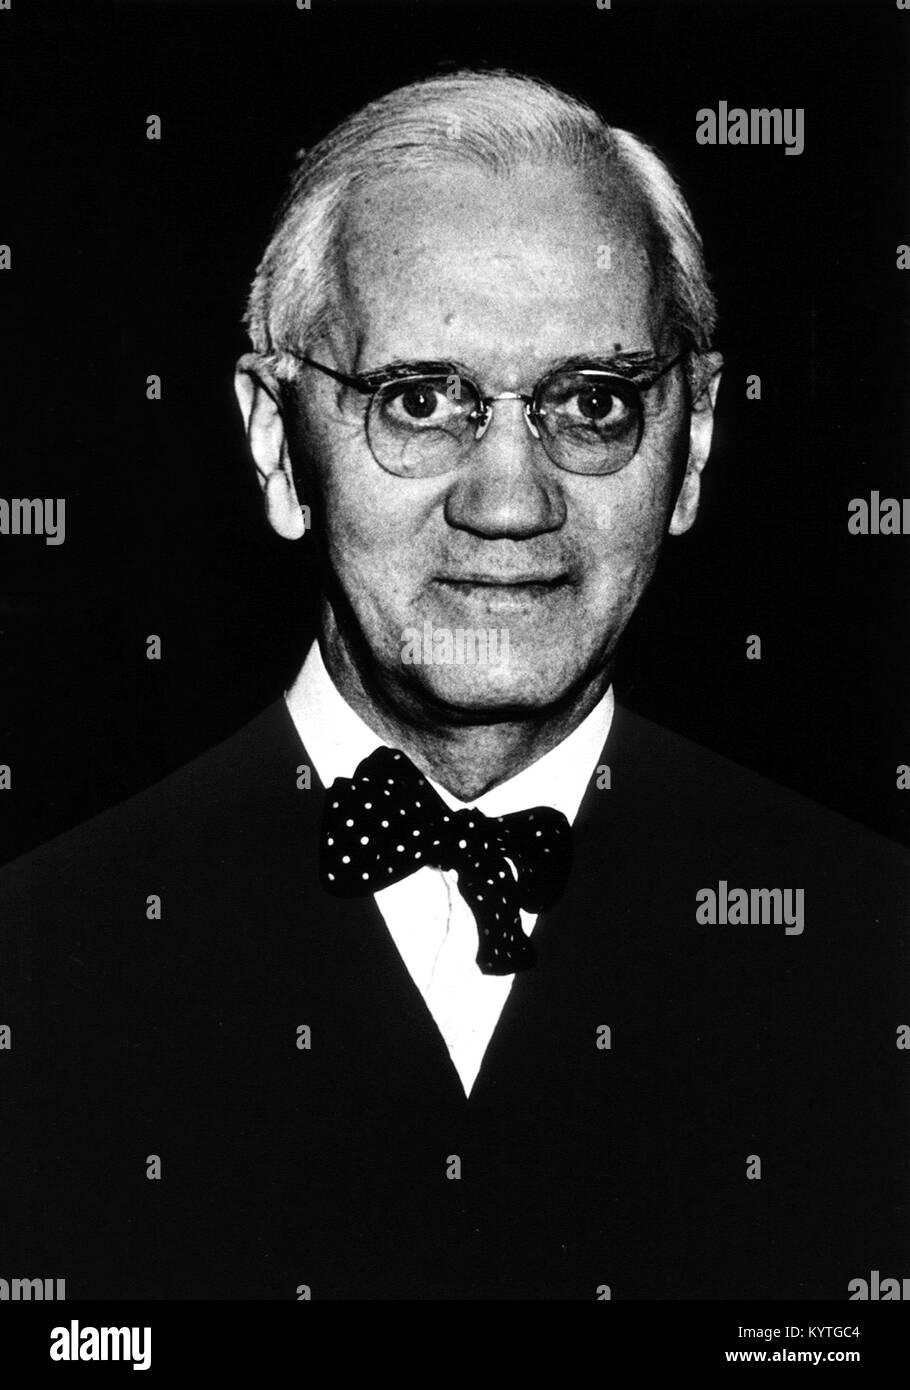 Sir Alexander Fleming (1881-1955), the Scottish scientist famous for the discovery of penicillin. - Stock Image